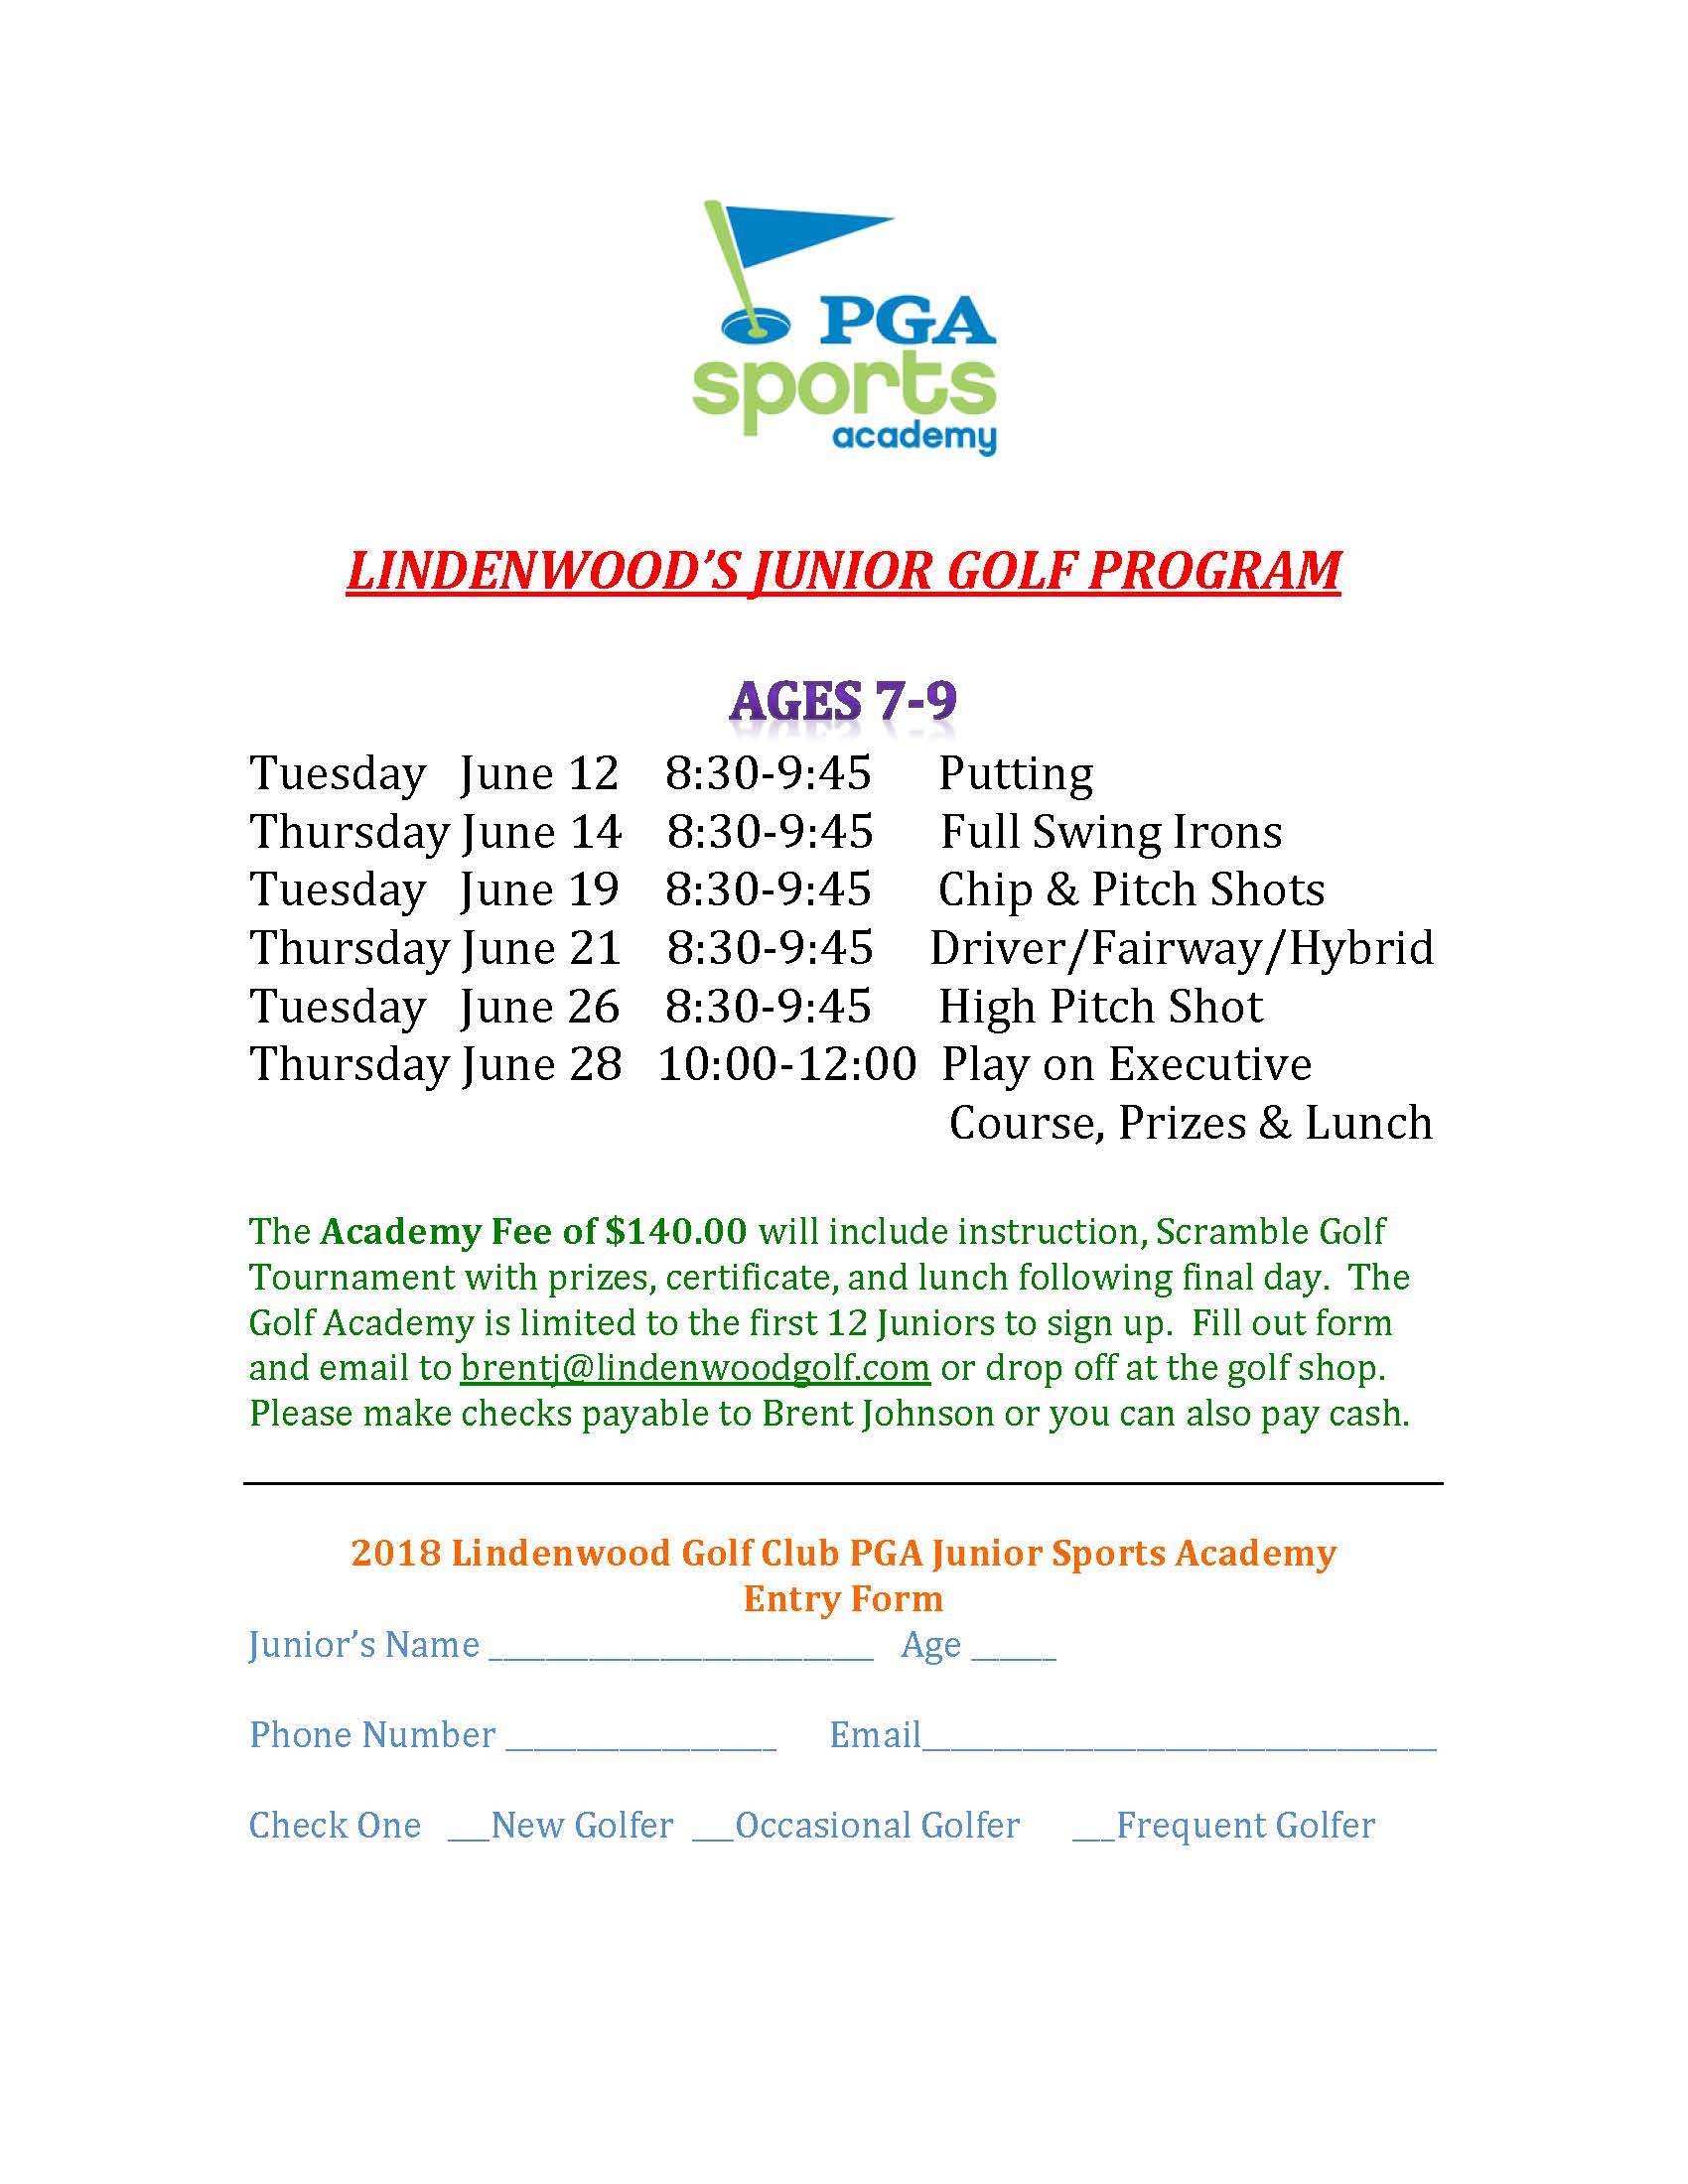 PGA Sports Academy Lindenwood Golf Club Ages 7 9